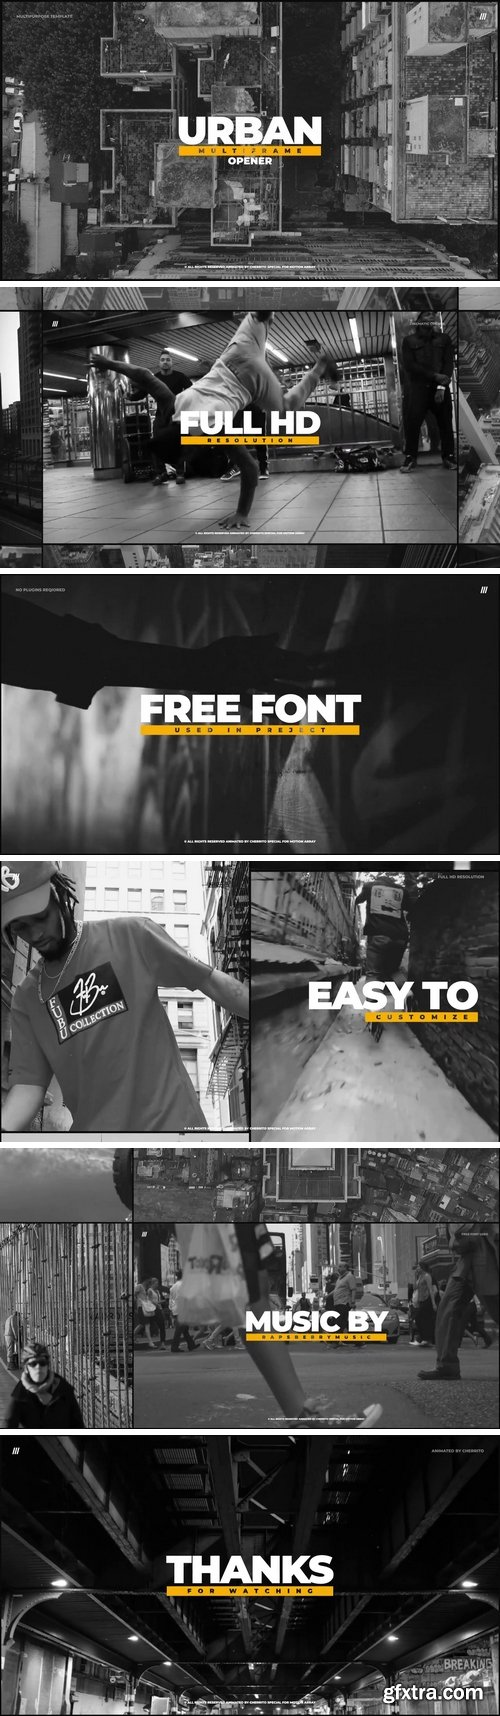 MA - Urban Multiframe Opener After Effects Templates 149125